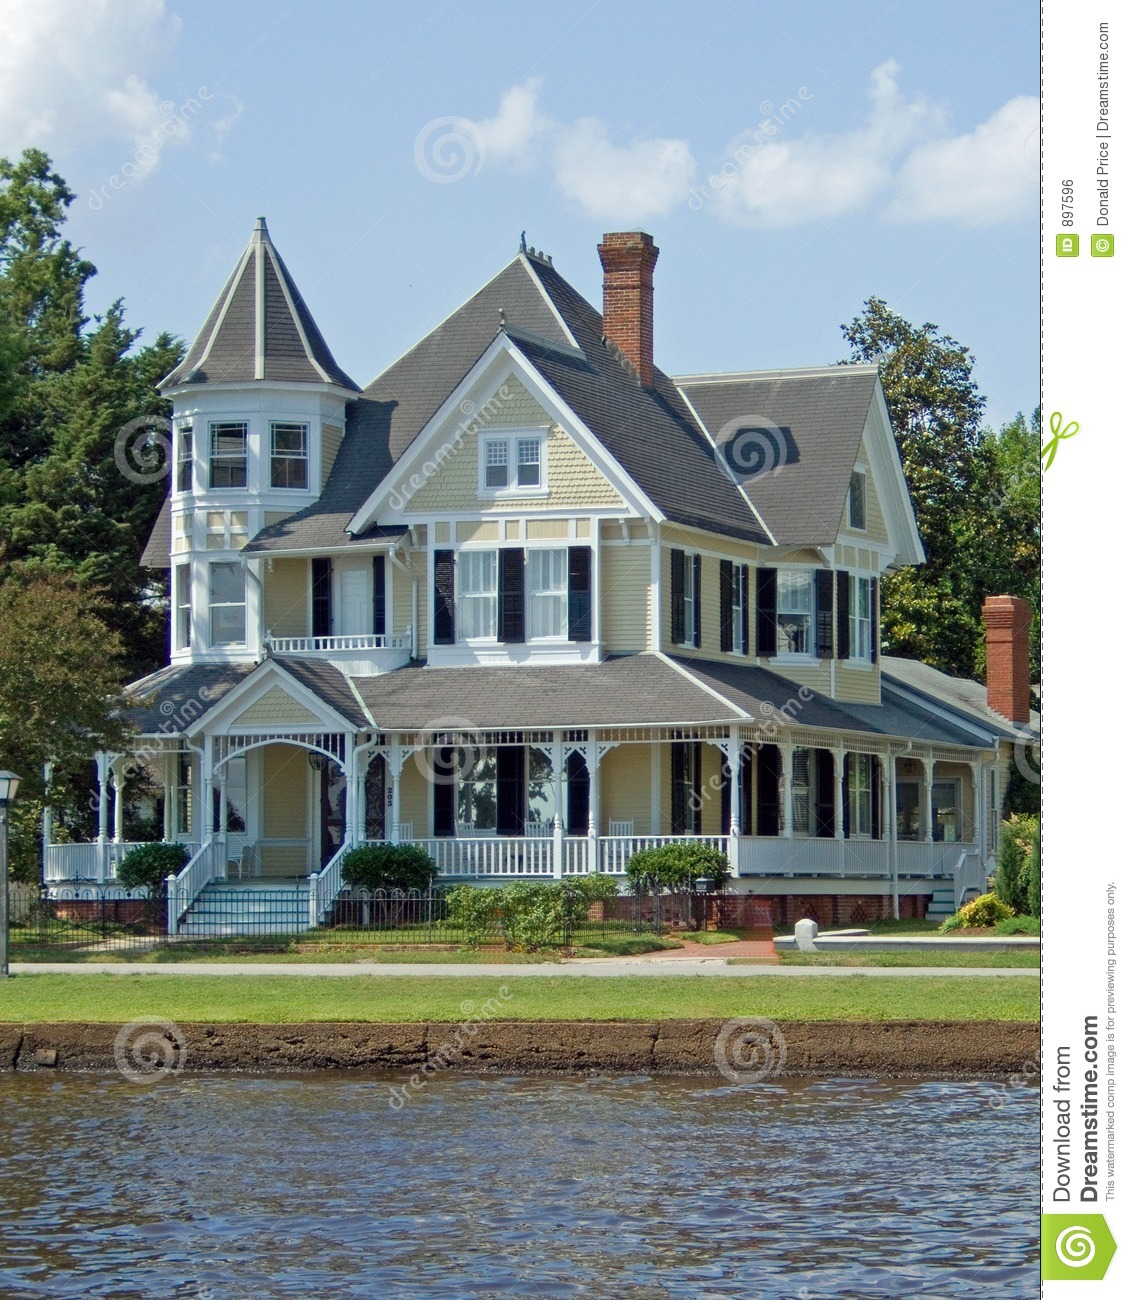 fully restored Victorian house in the southern part of the United ...: www.dreamstime.com/royalty-free-stock-image-victorian-home-image897596